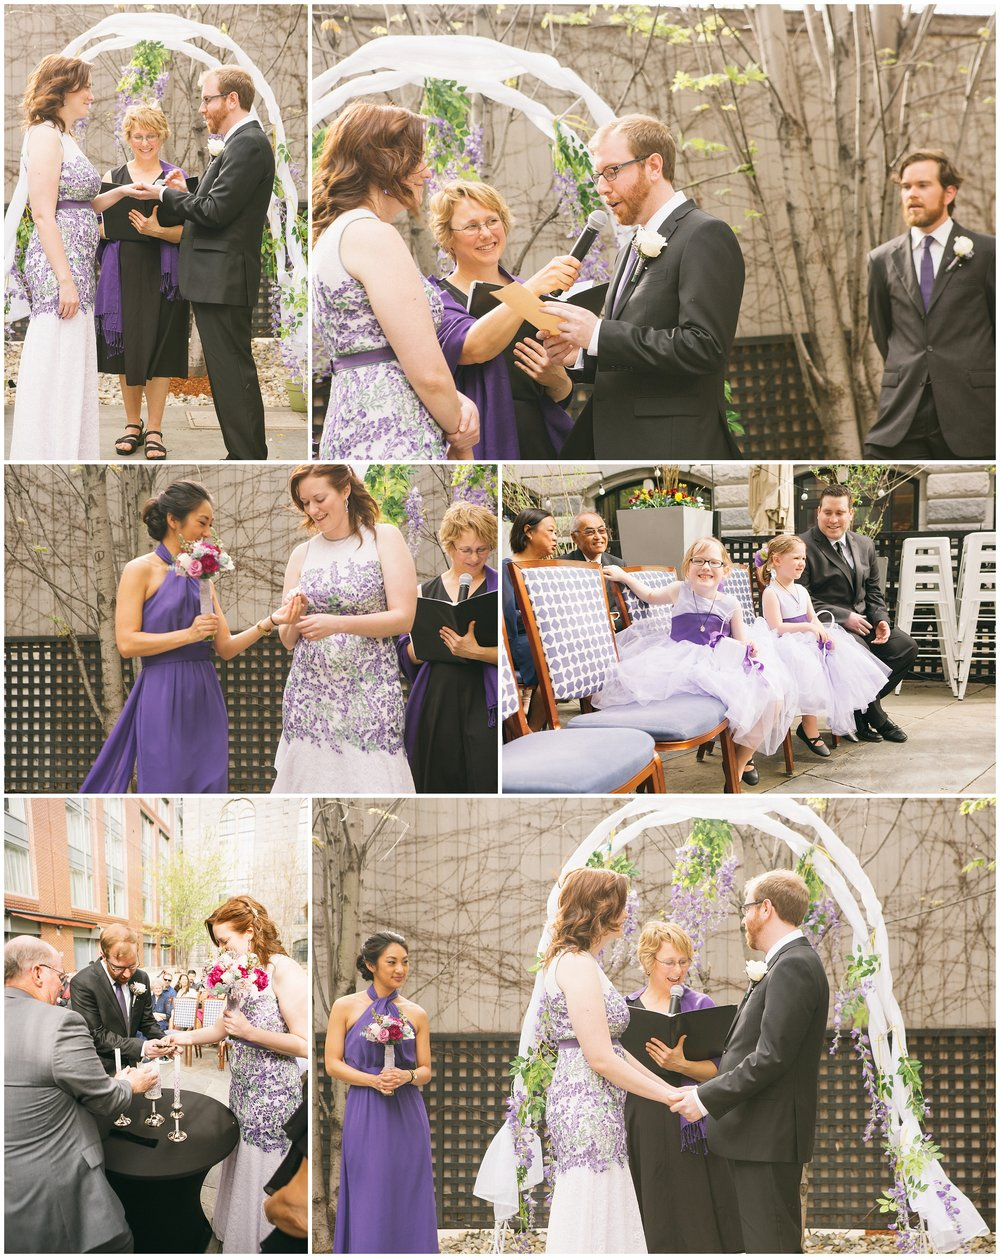 Liberty Hotel Boston Wedding Photography - Outdoor wedding ceremony with bride and groom. Images include lighting of unity candle and exchanging of rings by Ryan Richardson Photography.